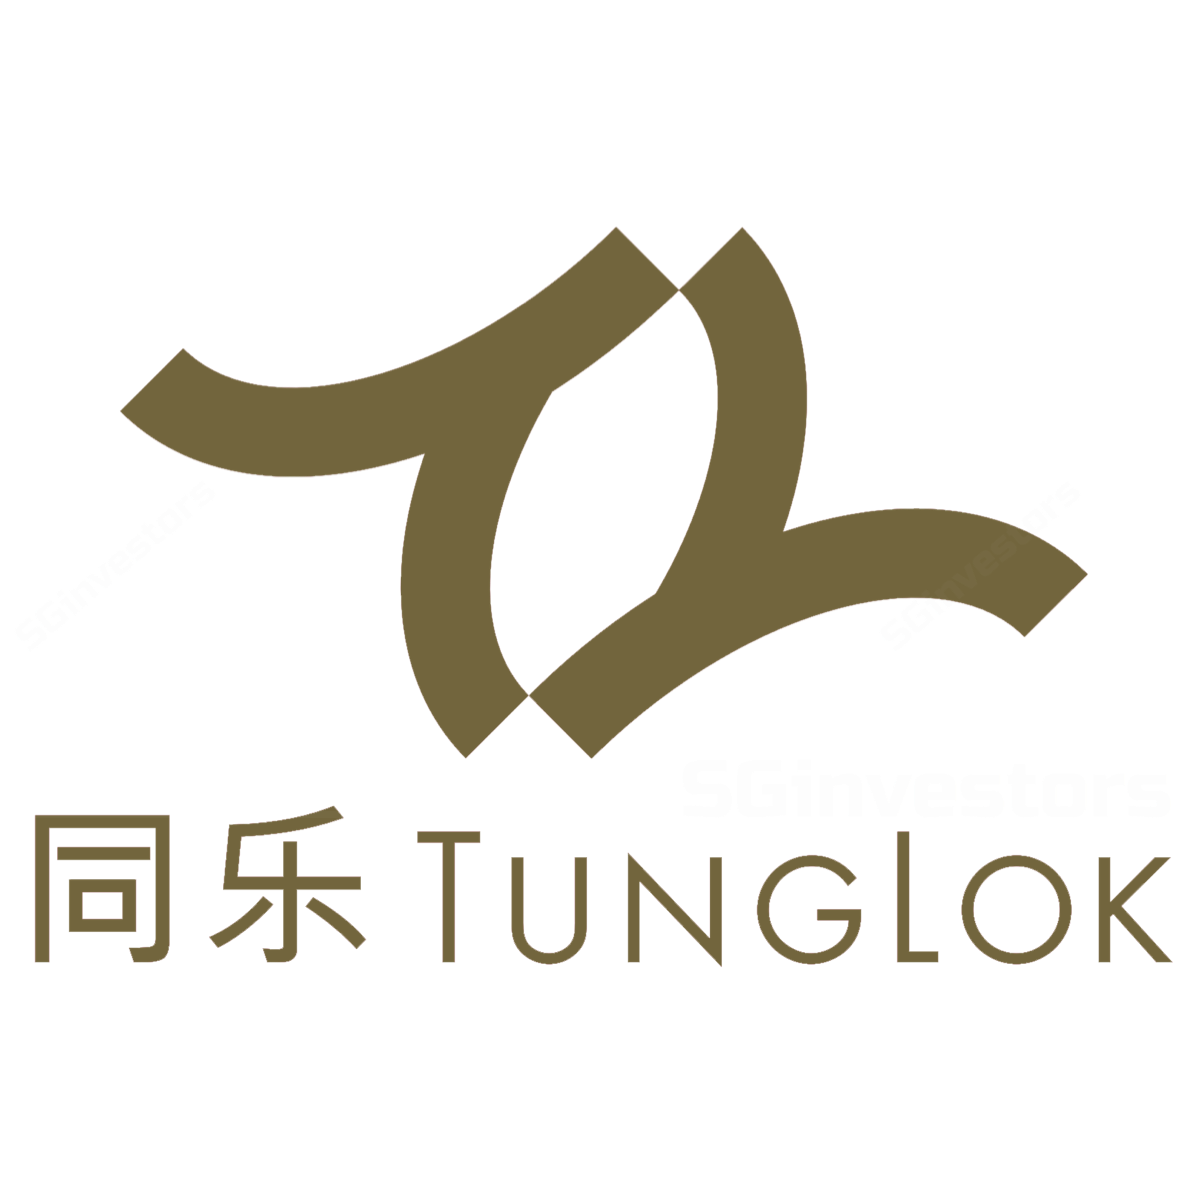 TUNG LOK RESTAURANTS 2000 LTD (540.SI)